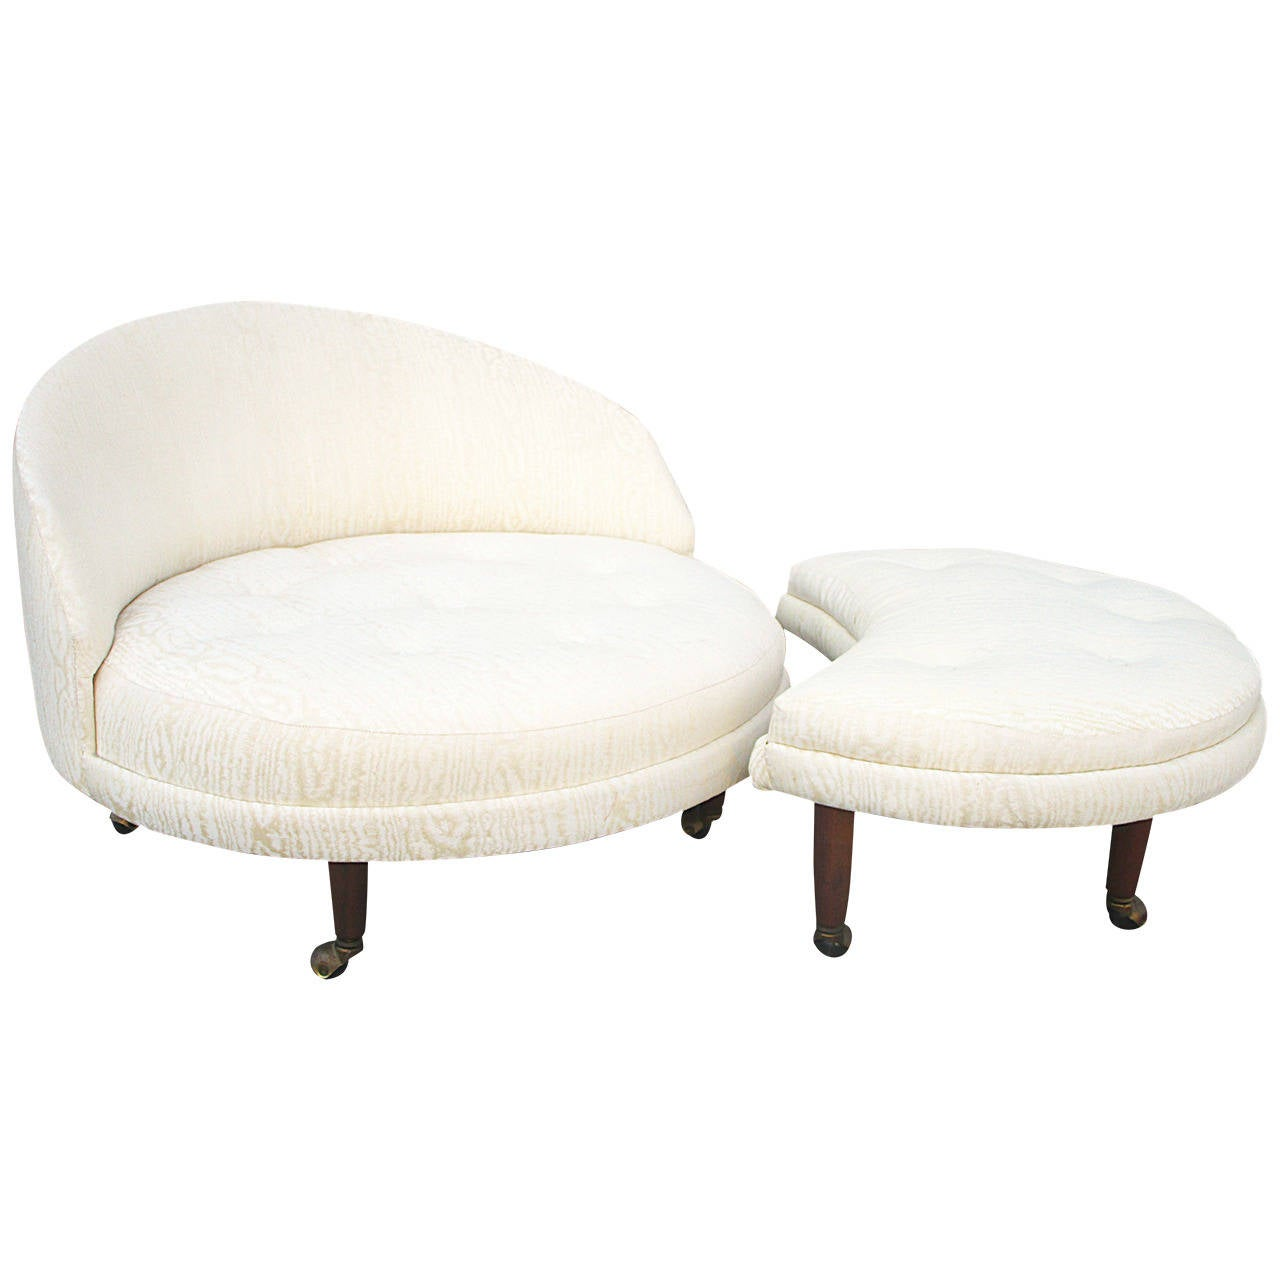 circular lounge chair serta executive office review adrian pearsall round with crescent ottoman at 1stdibs